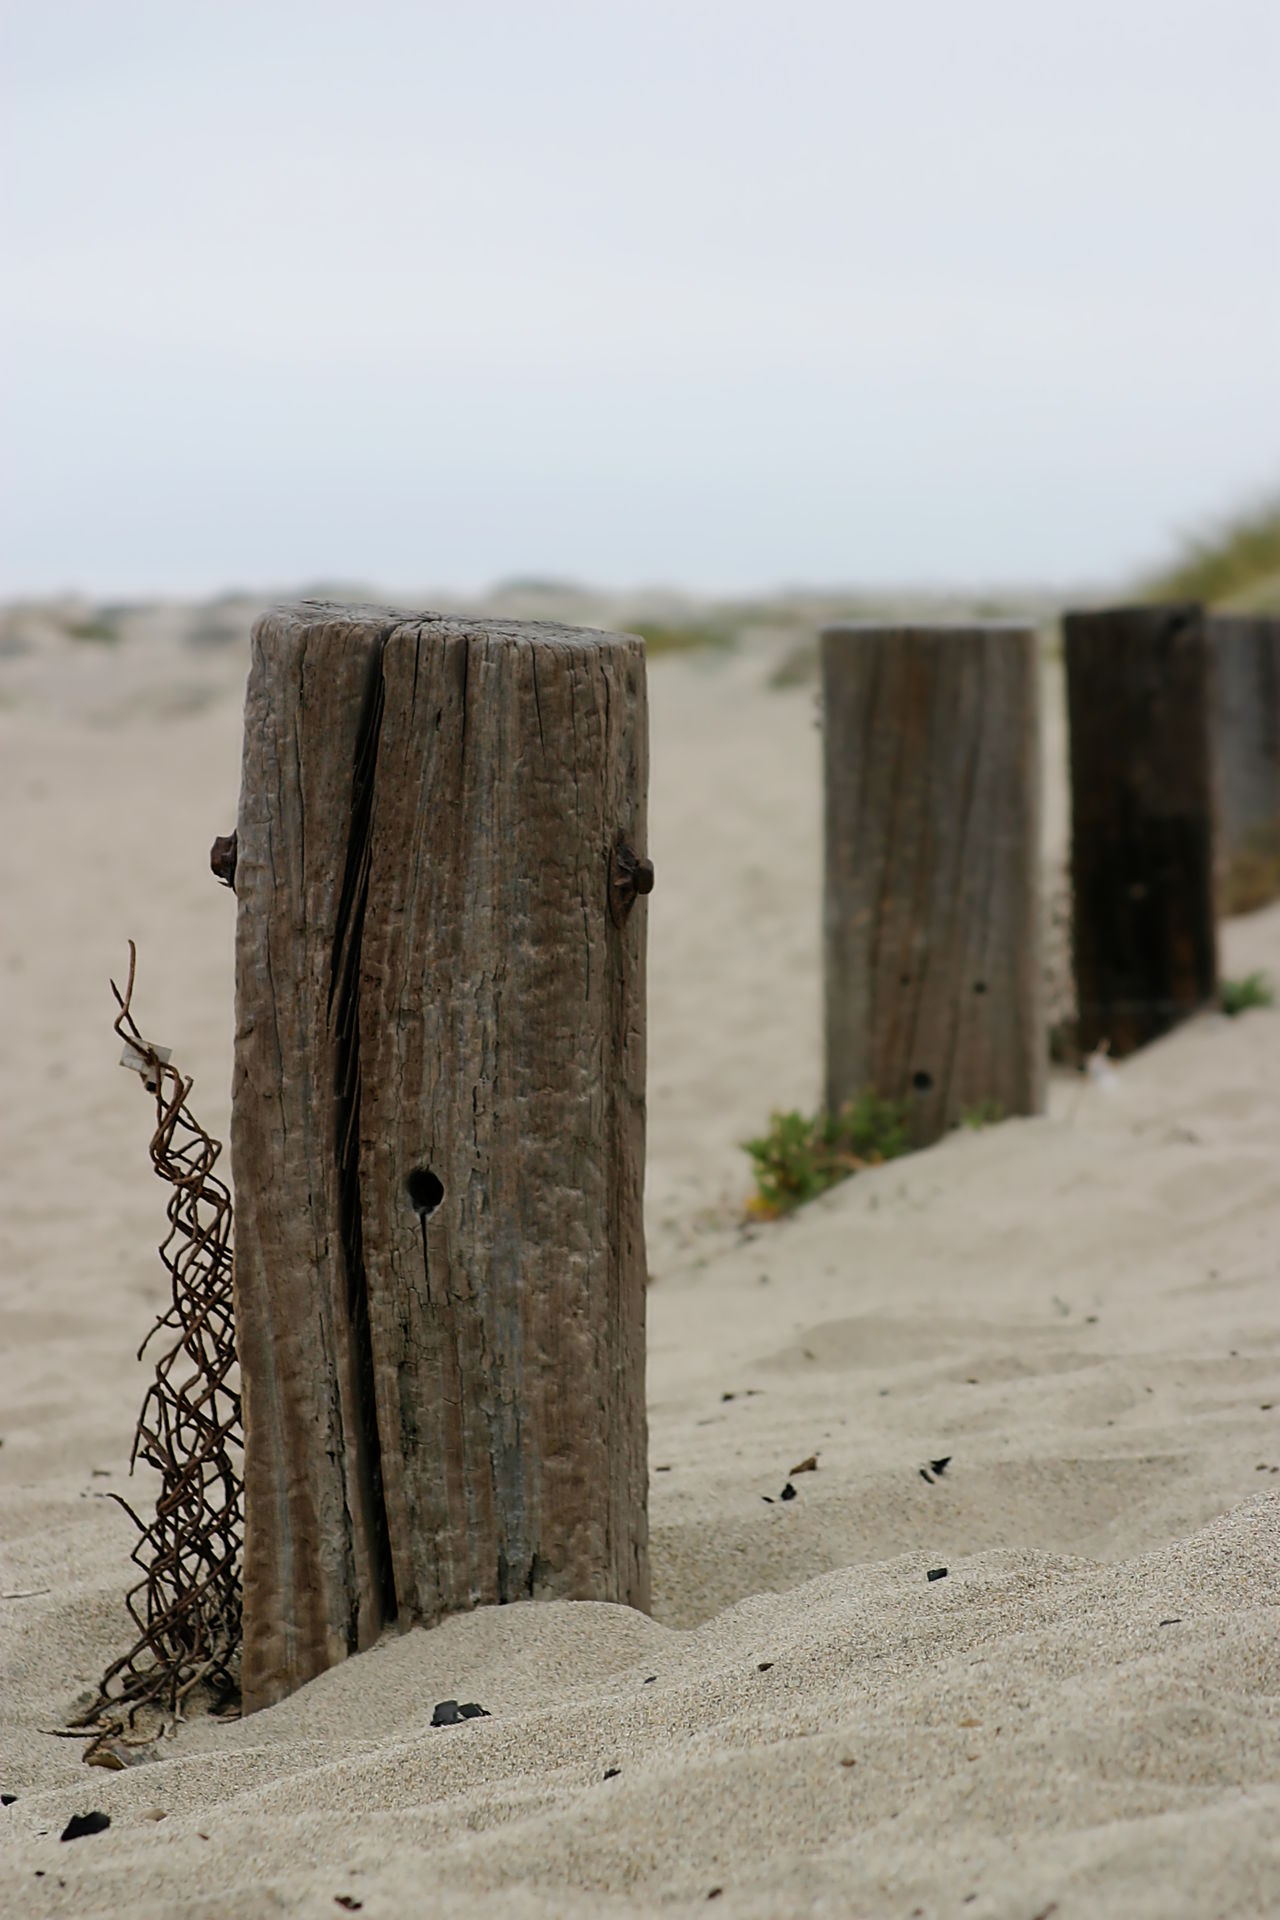 Old Fence Poles Old fence poles down by the beach. Beach Blue Coast Coastline Dune Dunes Fence Landscape Nature No People Old Outdoors Peace Peaceful Sand Sandy Shore Sky Solitude Tranquil Scene Tranquility Vacation Weathered Wood Wooden